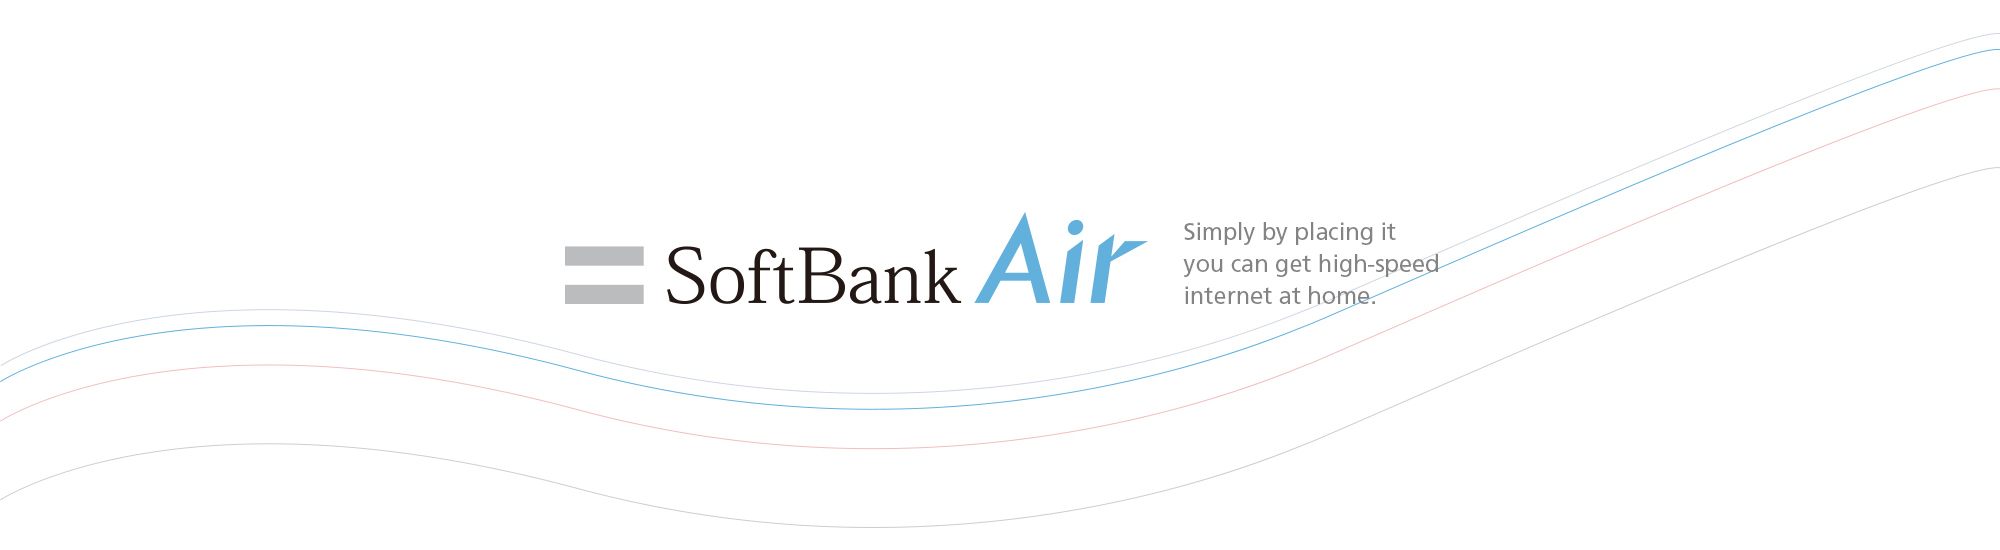 SoftBank Air Simply by placing it you can get high-speed internet at home.